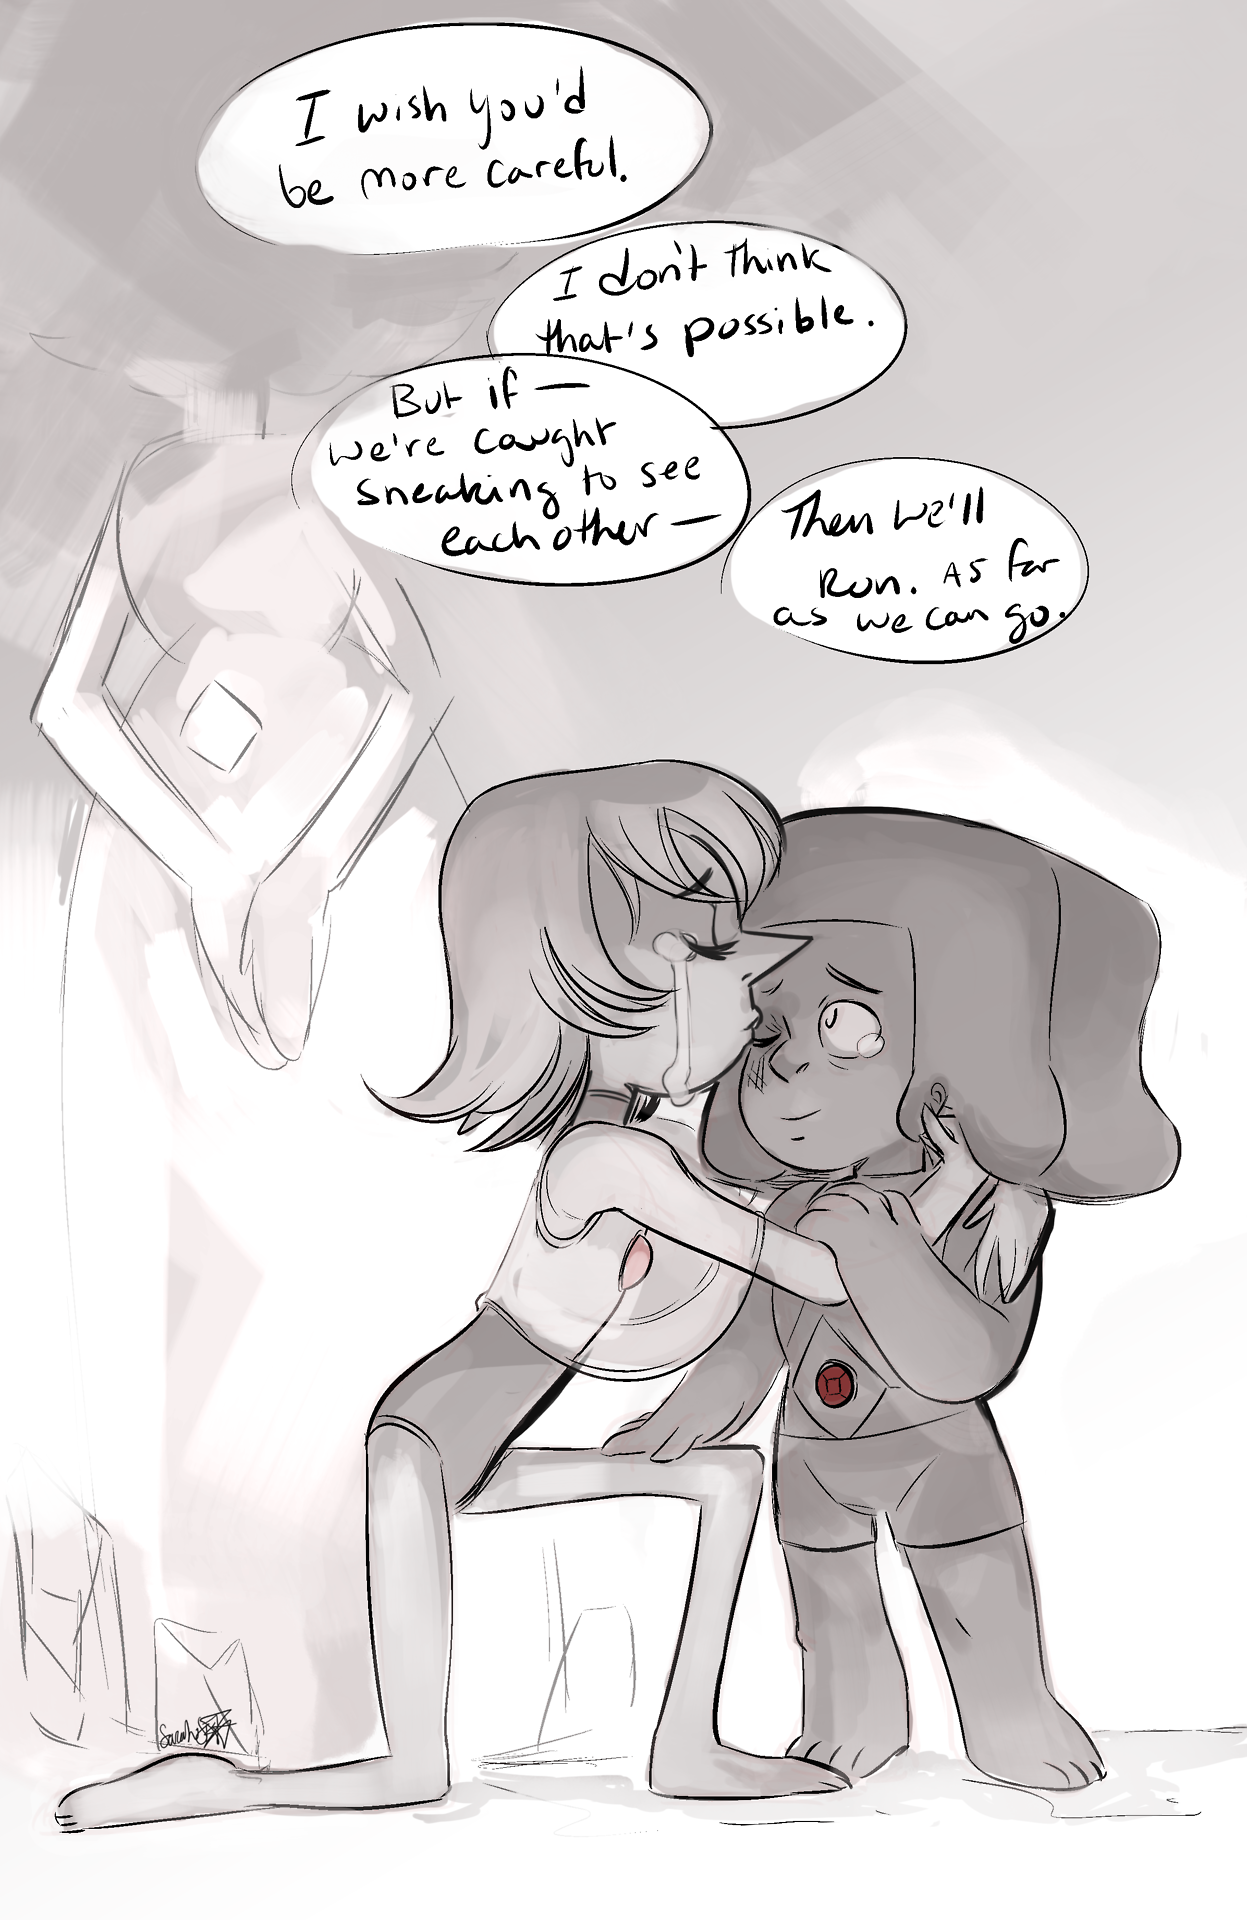 Some more rhodonite pearl and ruby- I imagine they had to sneak around in shadowy corners to see each other, and the idea to even fuse was late in their forbidden romance. but I bet running away was...